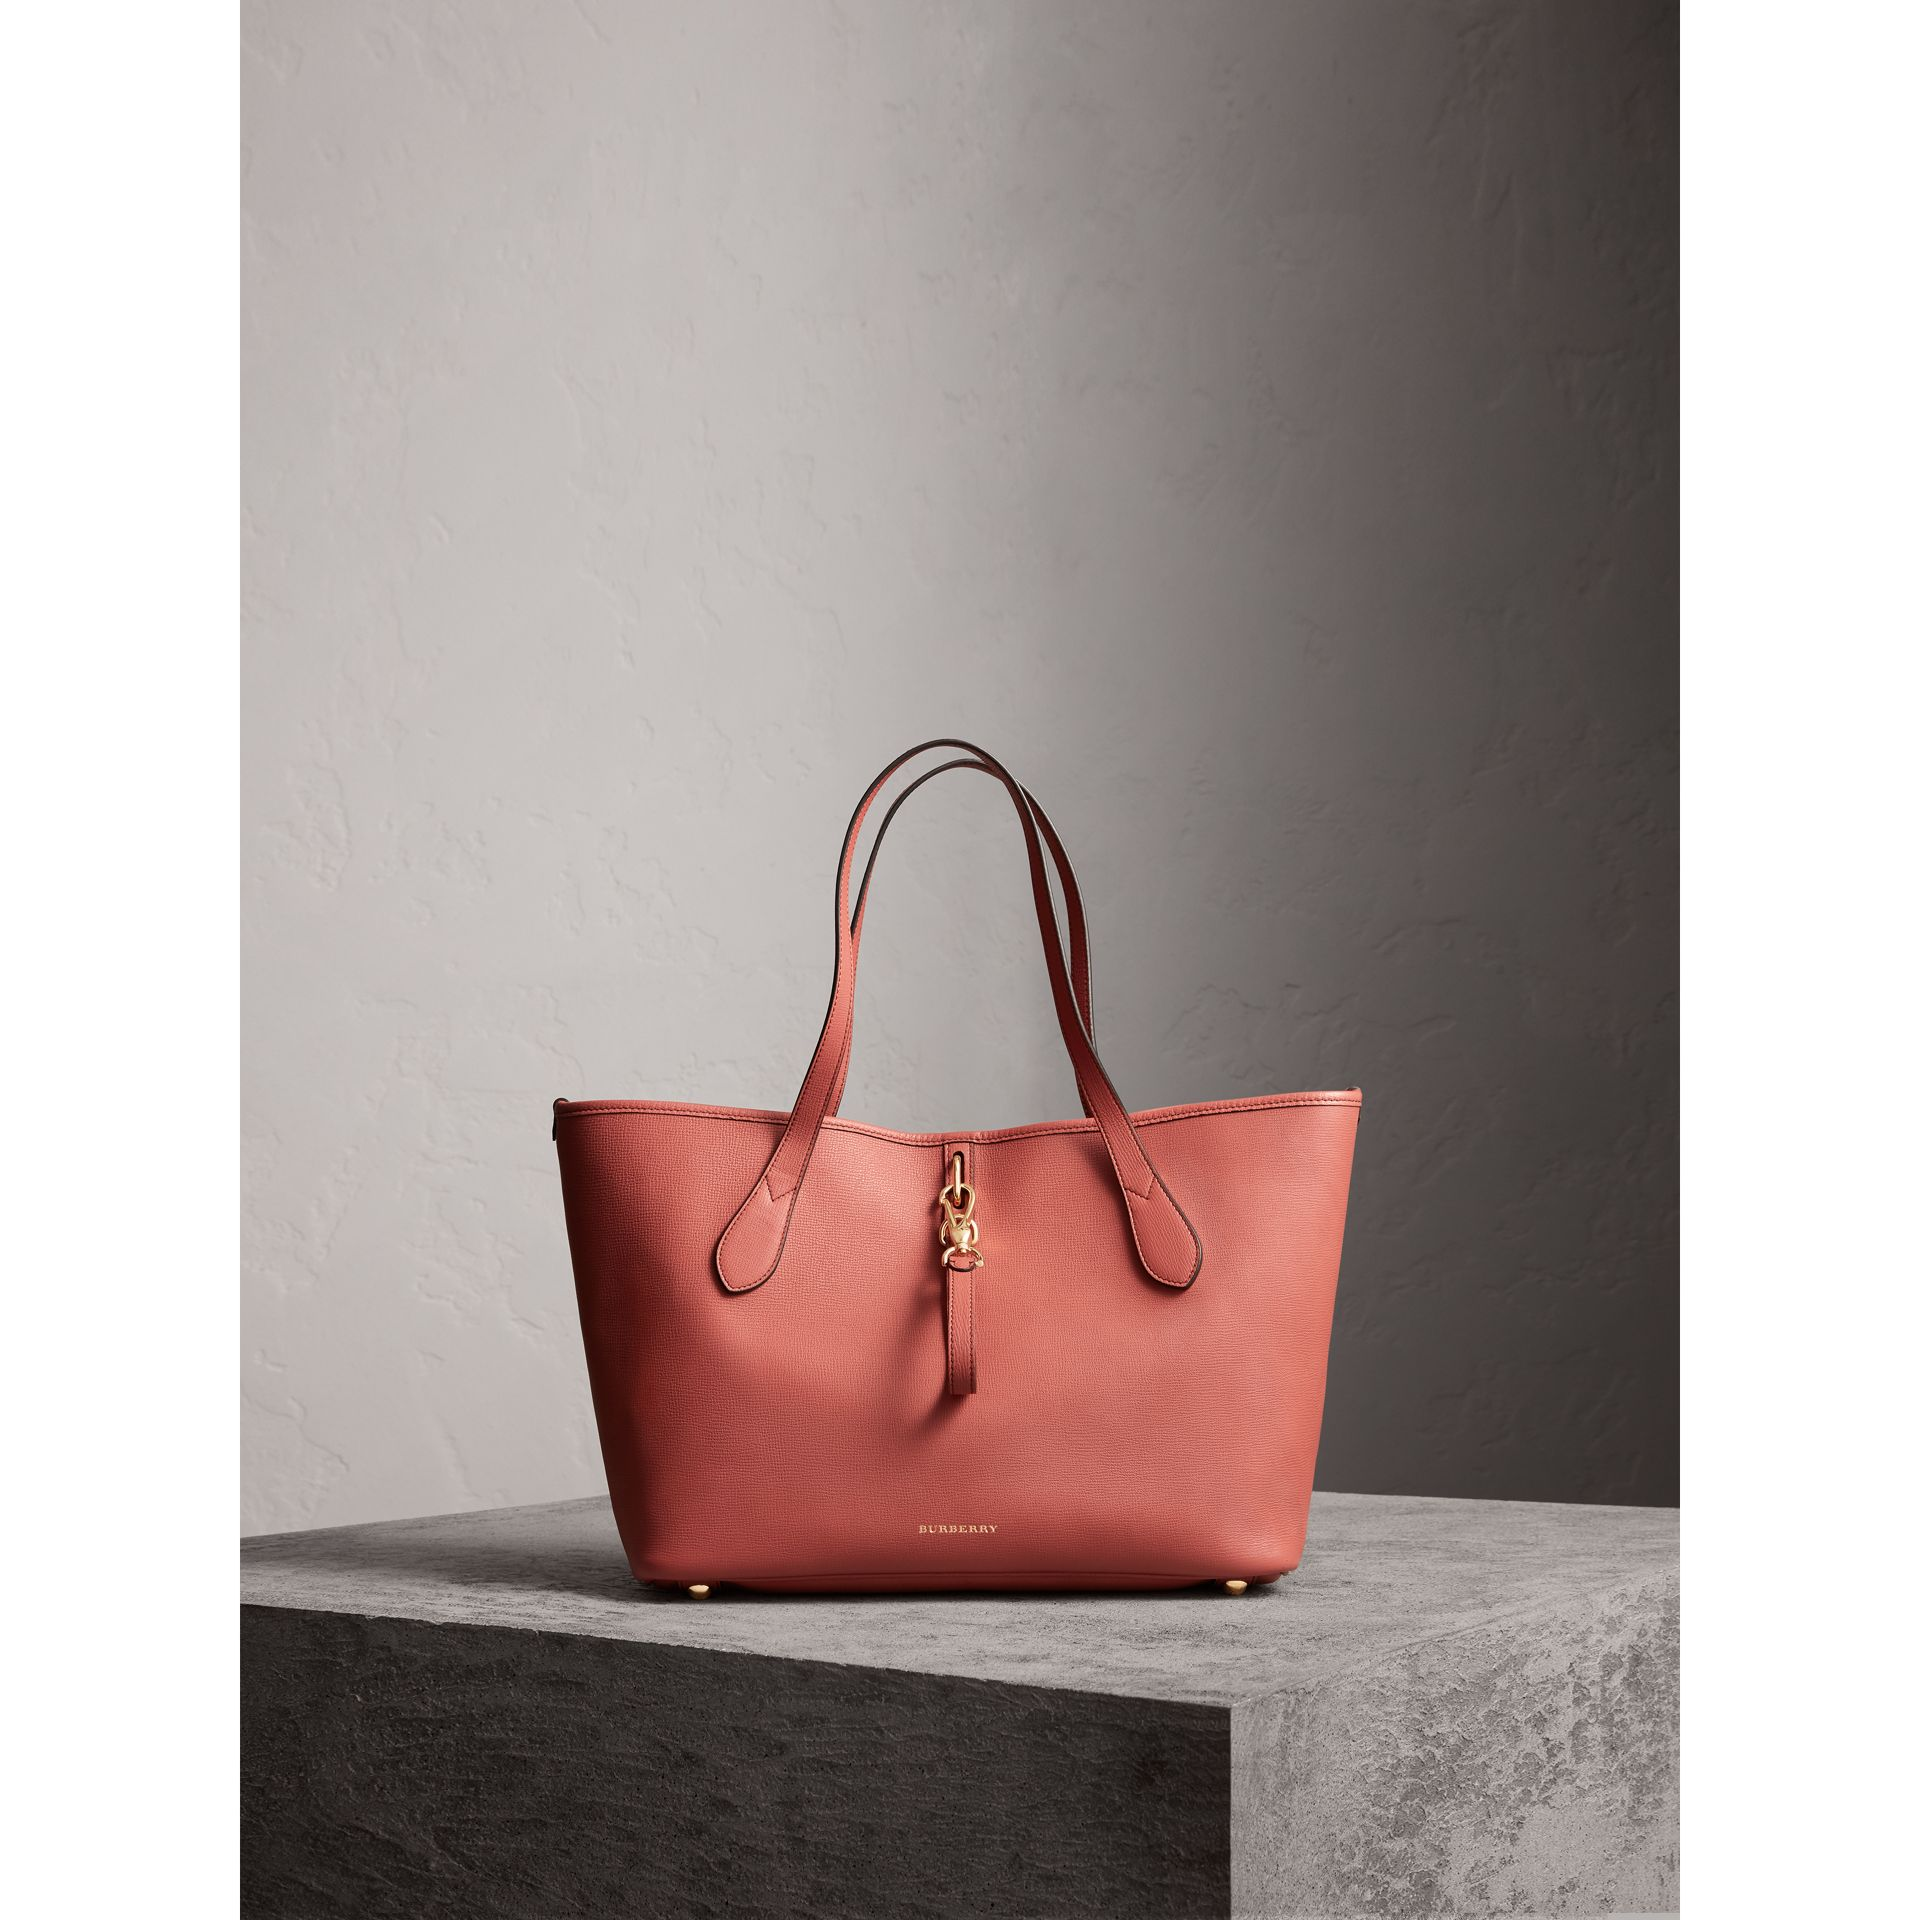 Medium Grainy Leather Tote Bag in Cinnamon Red - Women | Burberry Australia - gallery image 7